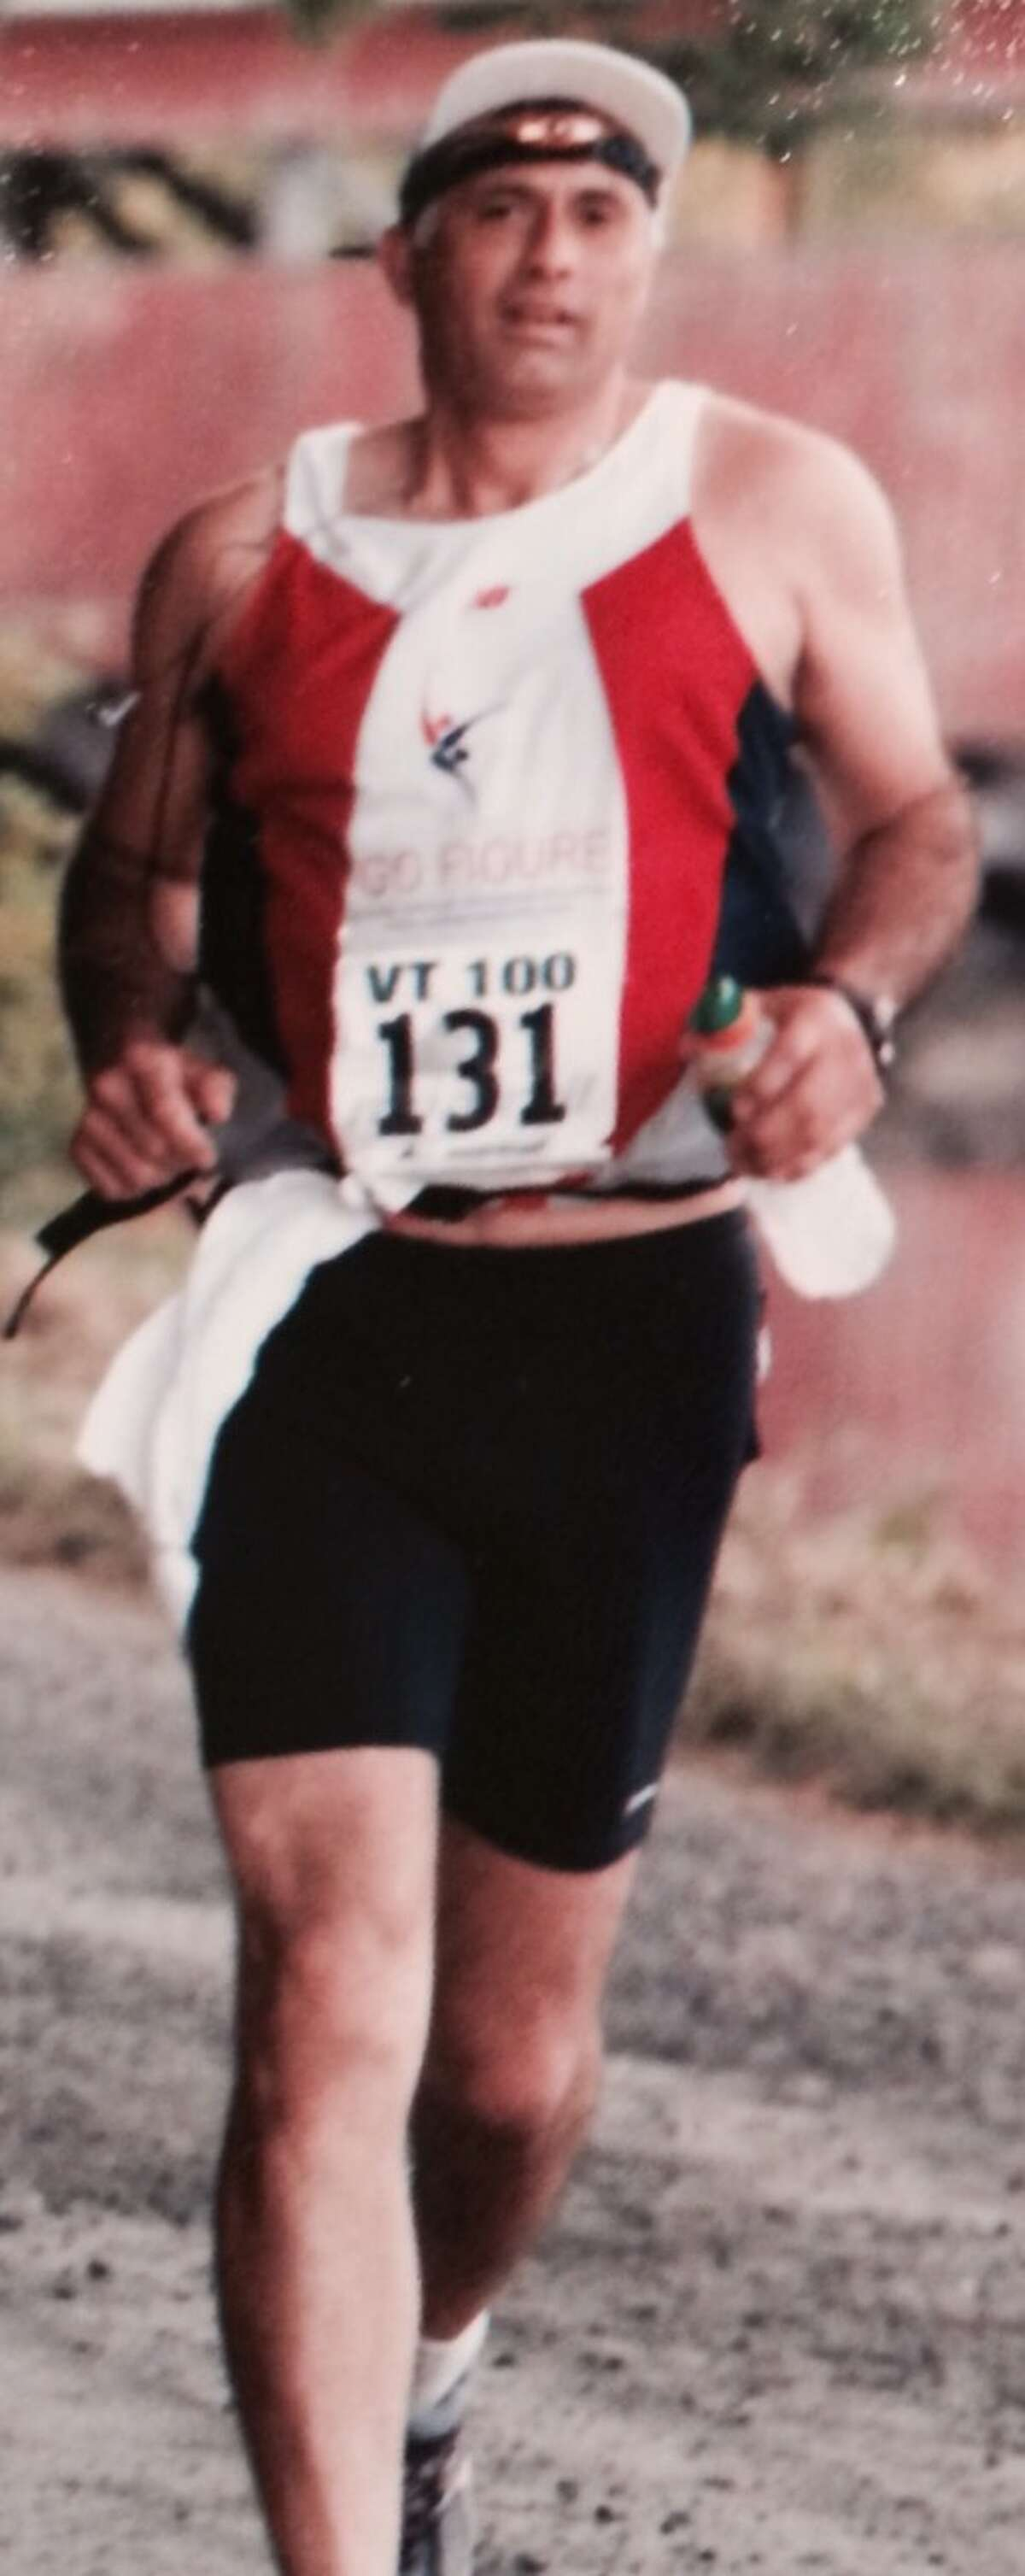 Stamford resident Hugo Mujica will participate in his 100th race, the TCS New York City Marathon, on Sunday.